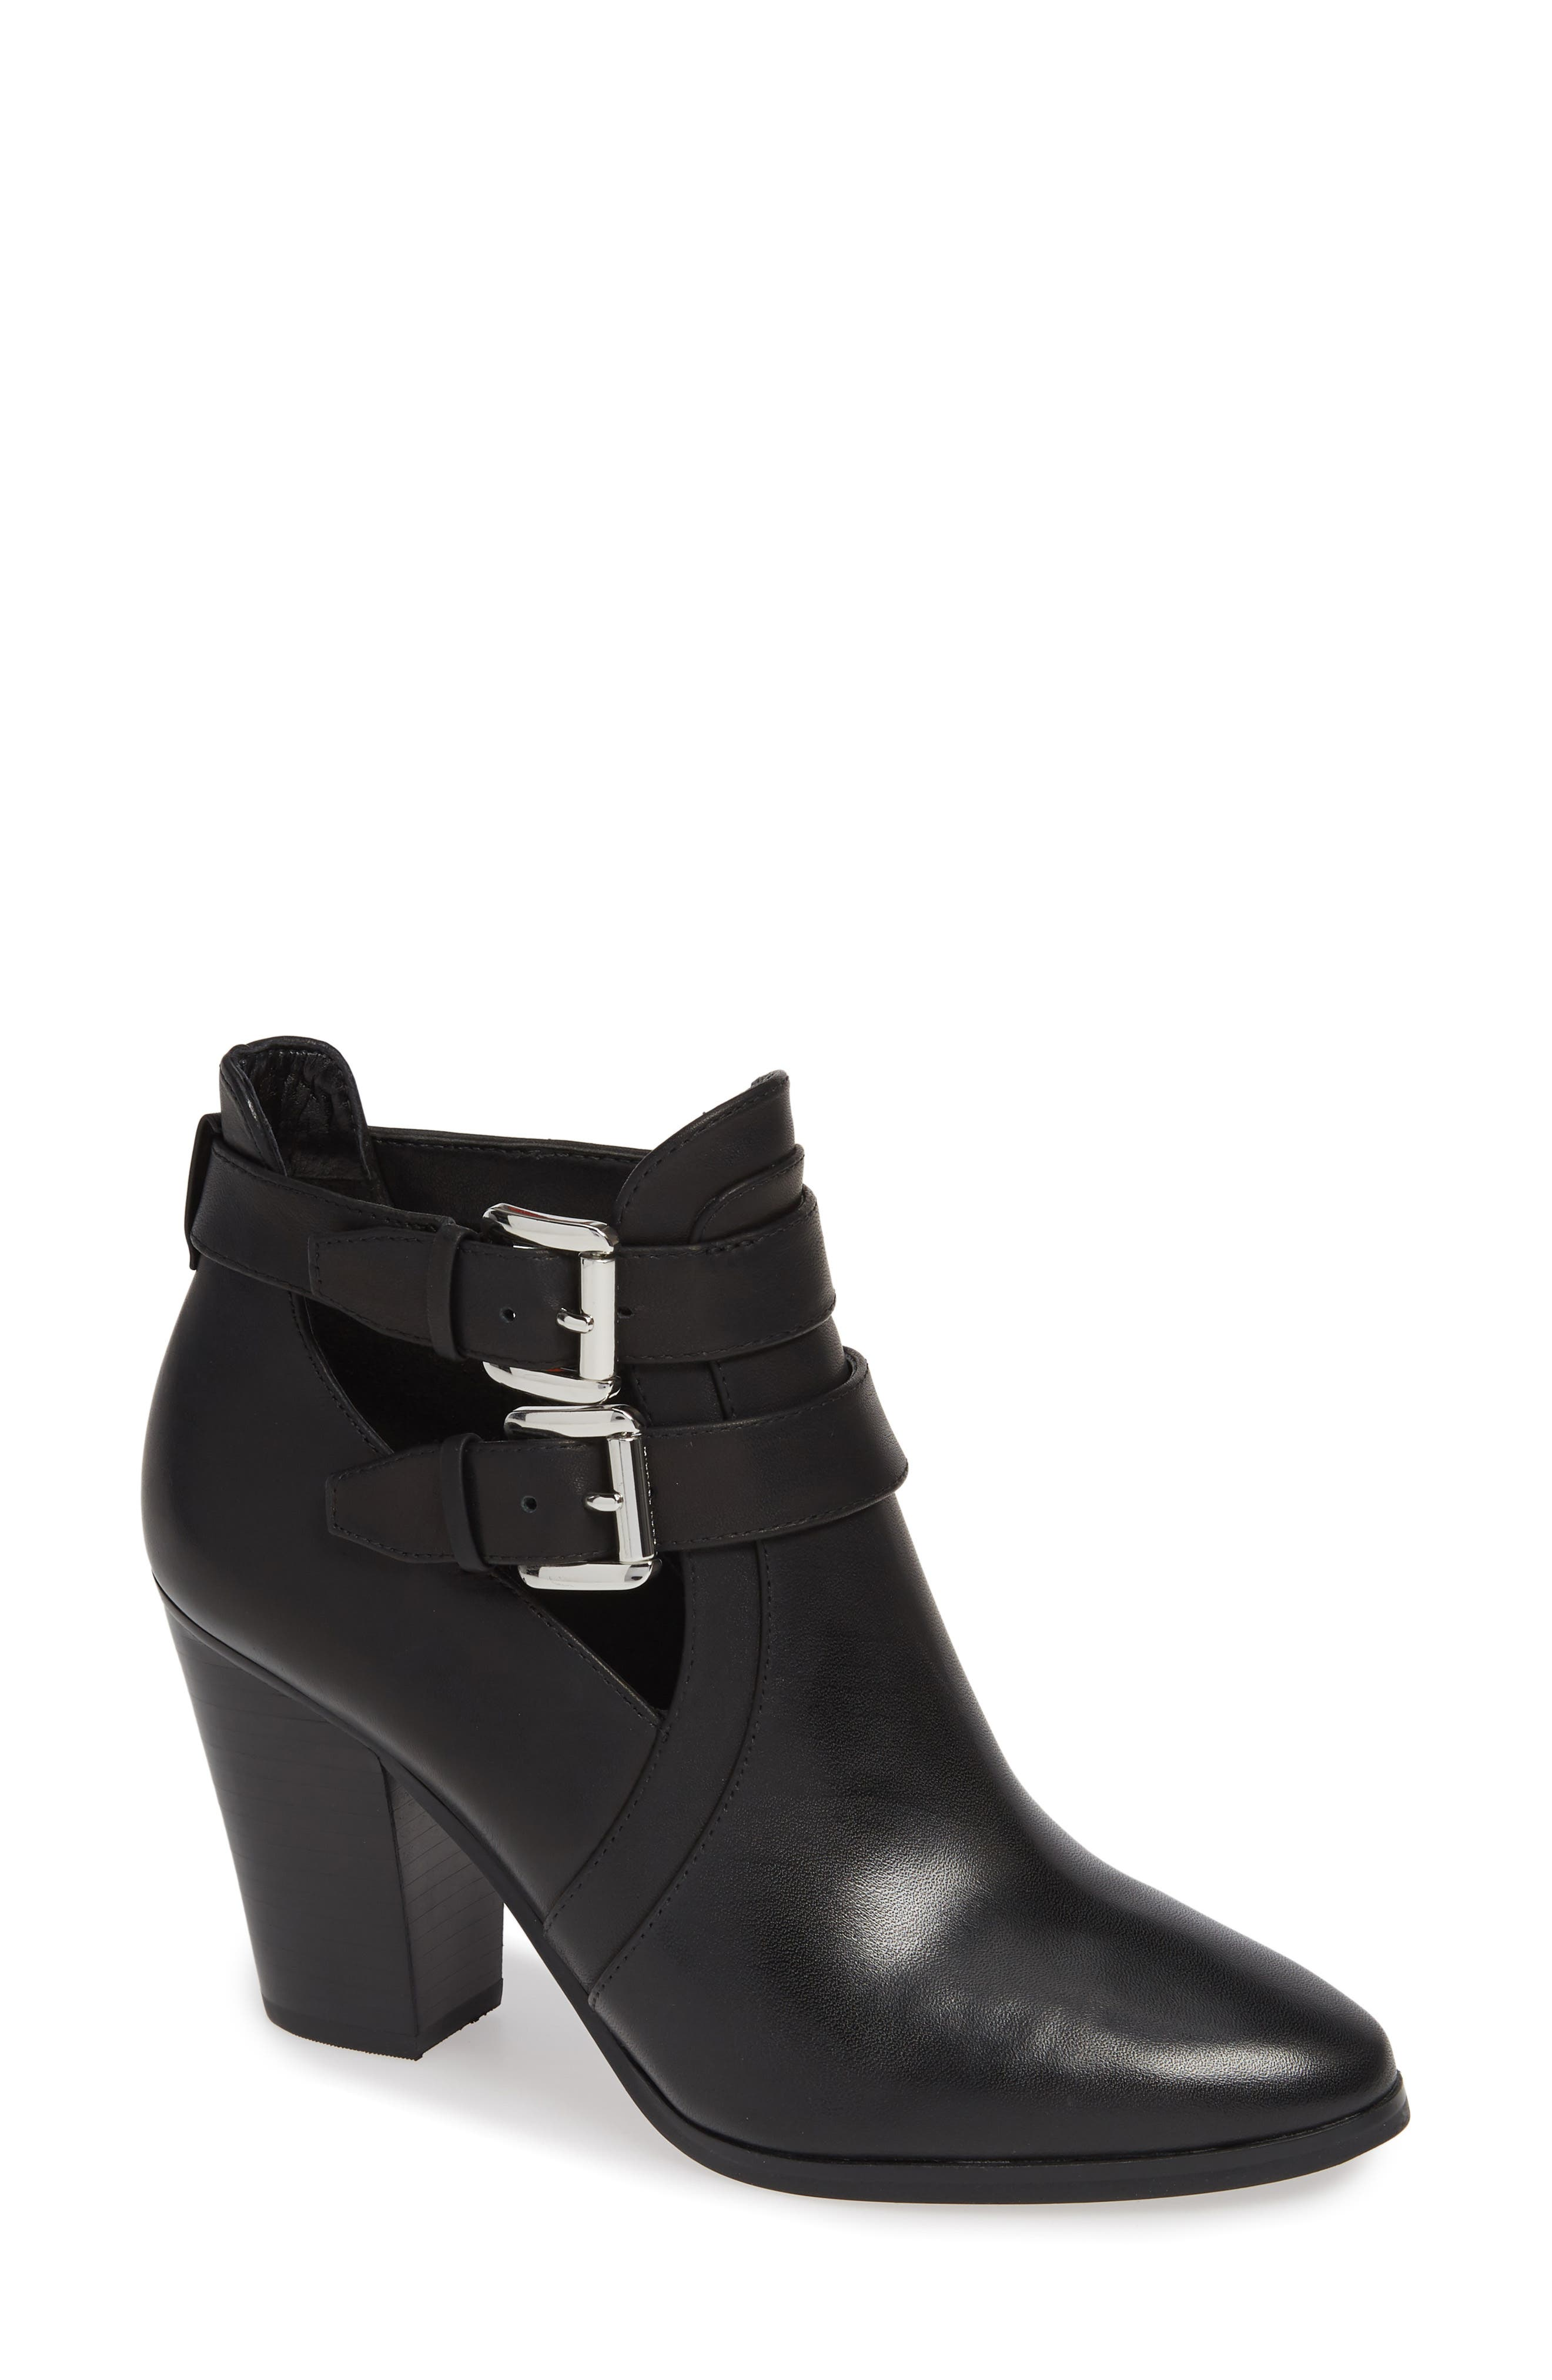 Walden Bootie,                             Main thumbnail 1, color,                             BLACK VACHETTA LEATHER